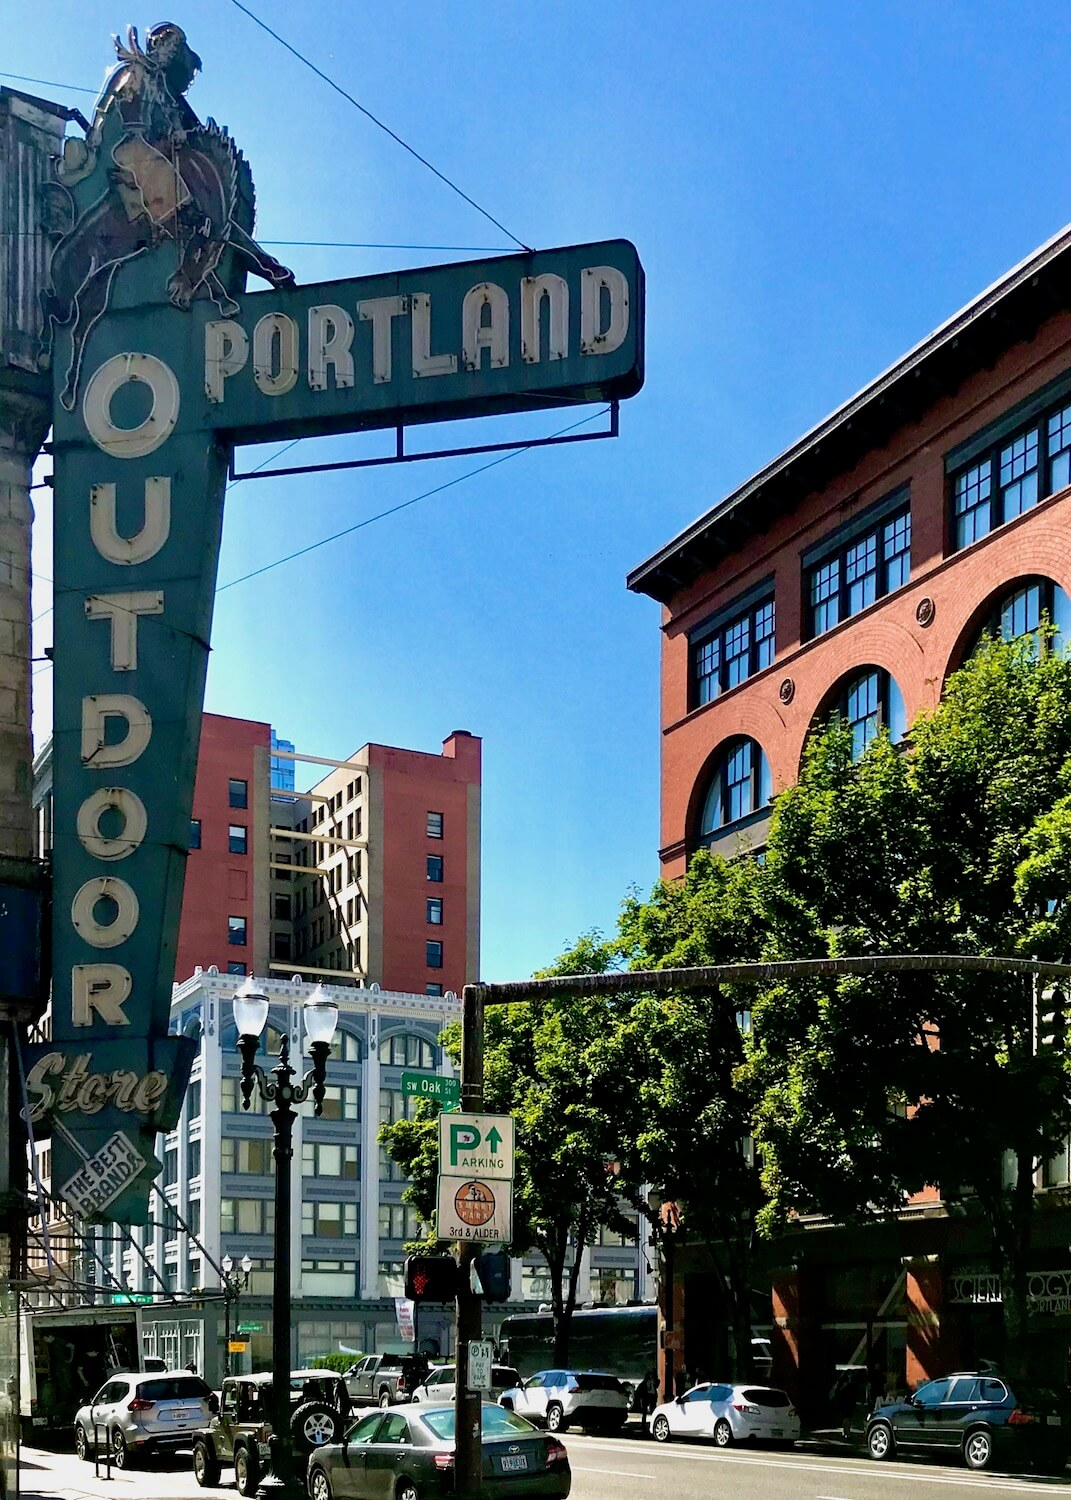 The iconic Portland Outdoor Store in downtown Portland shows off a green retro style neon sign with white lettering while other vintage red brick buildings stand across the street and further down.